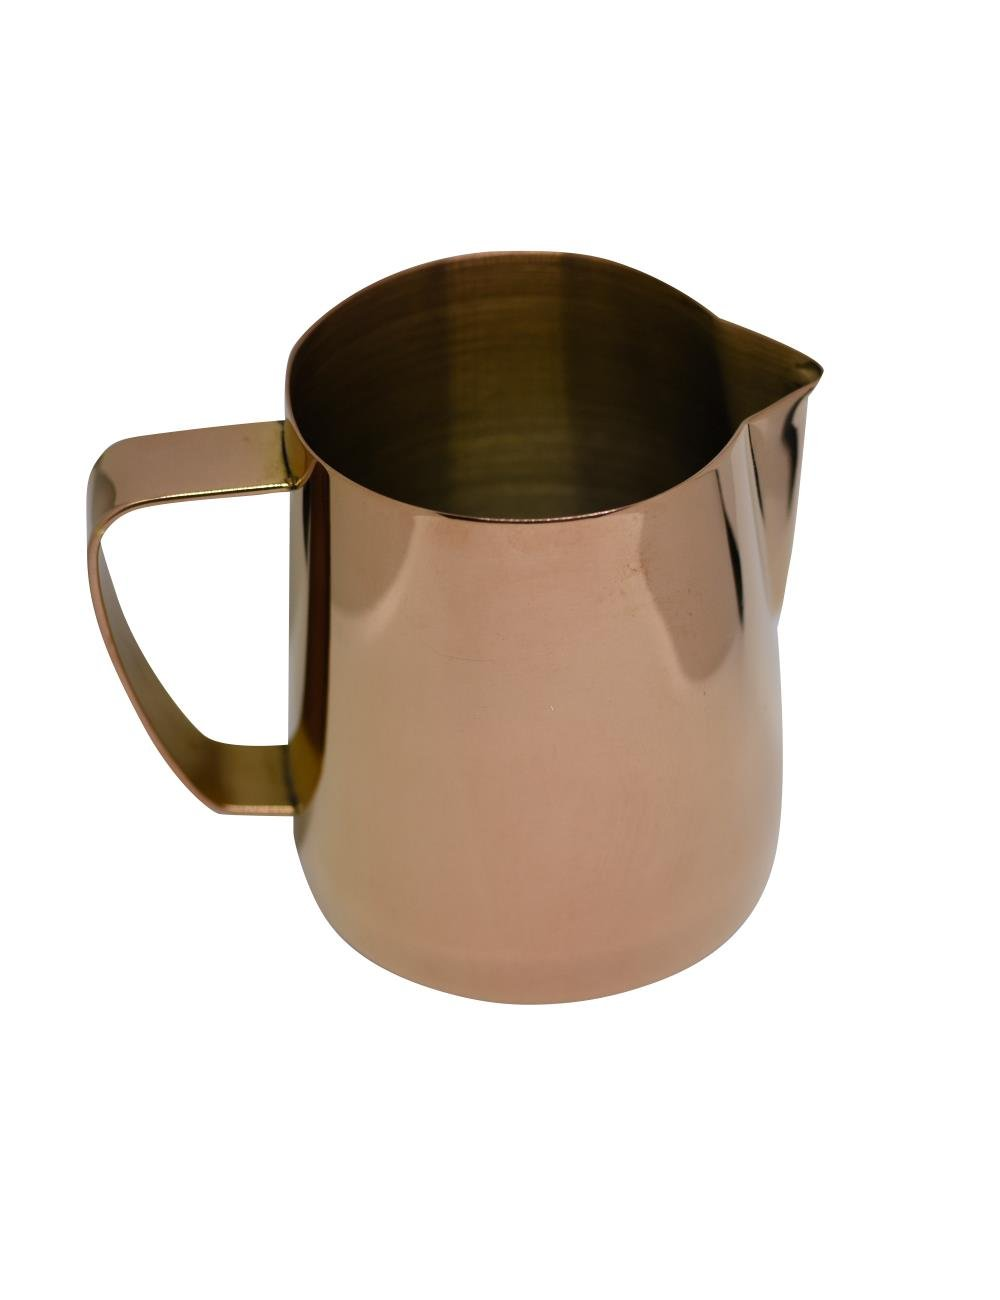 Latte Art | Stainless Steel Milk Frothing Pitcher Rose Gold 20 oz Titanium Mirror Finish by Barista Swag